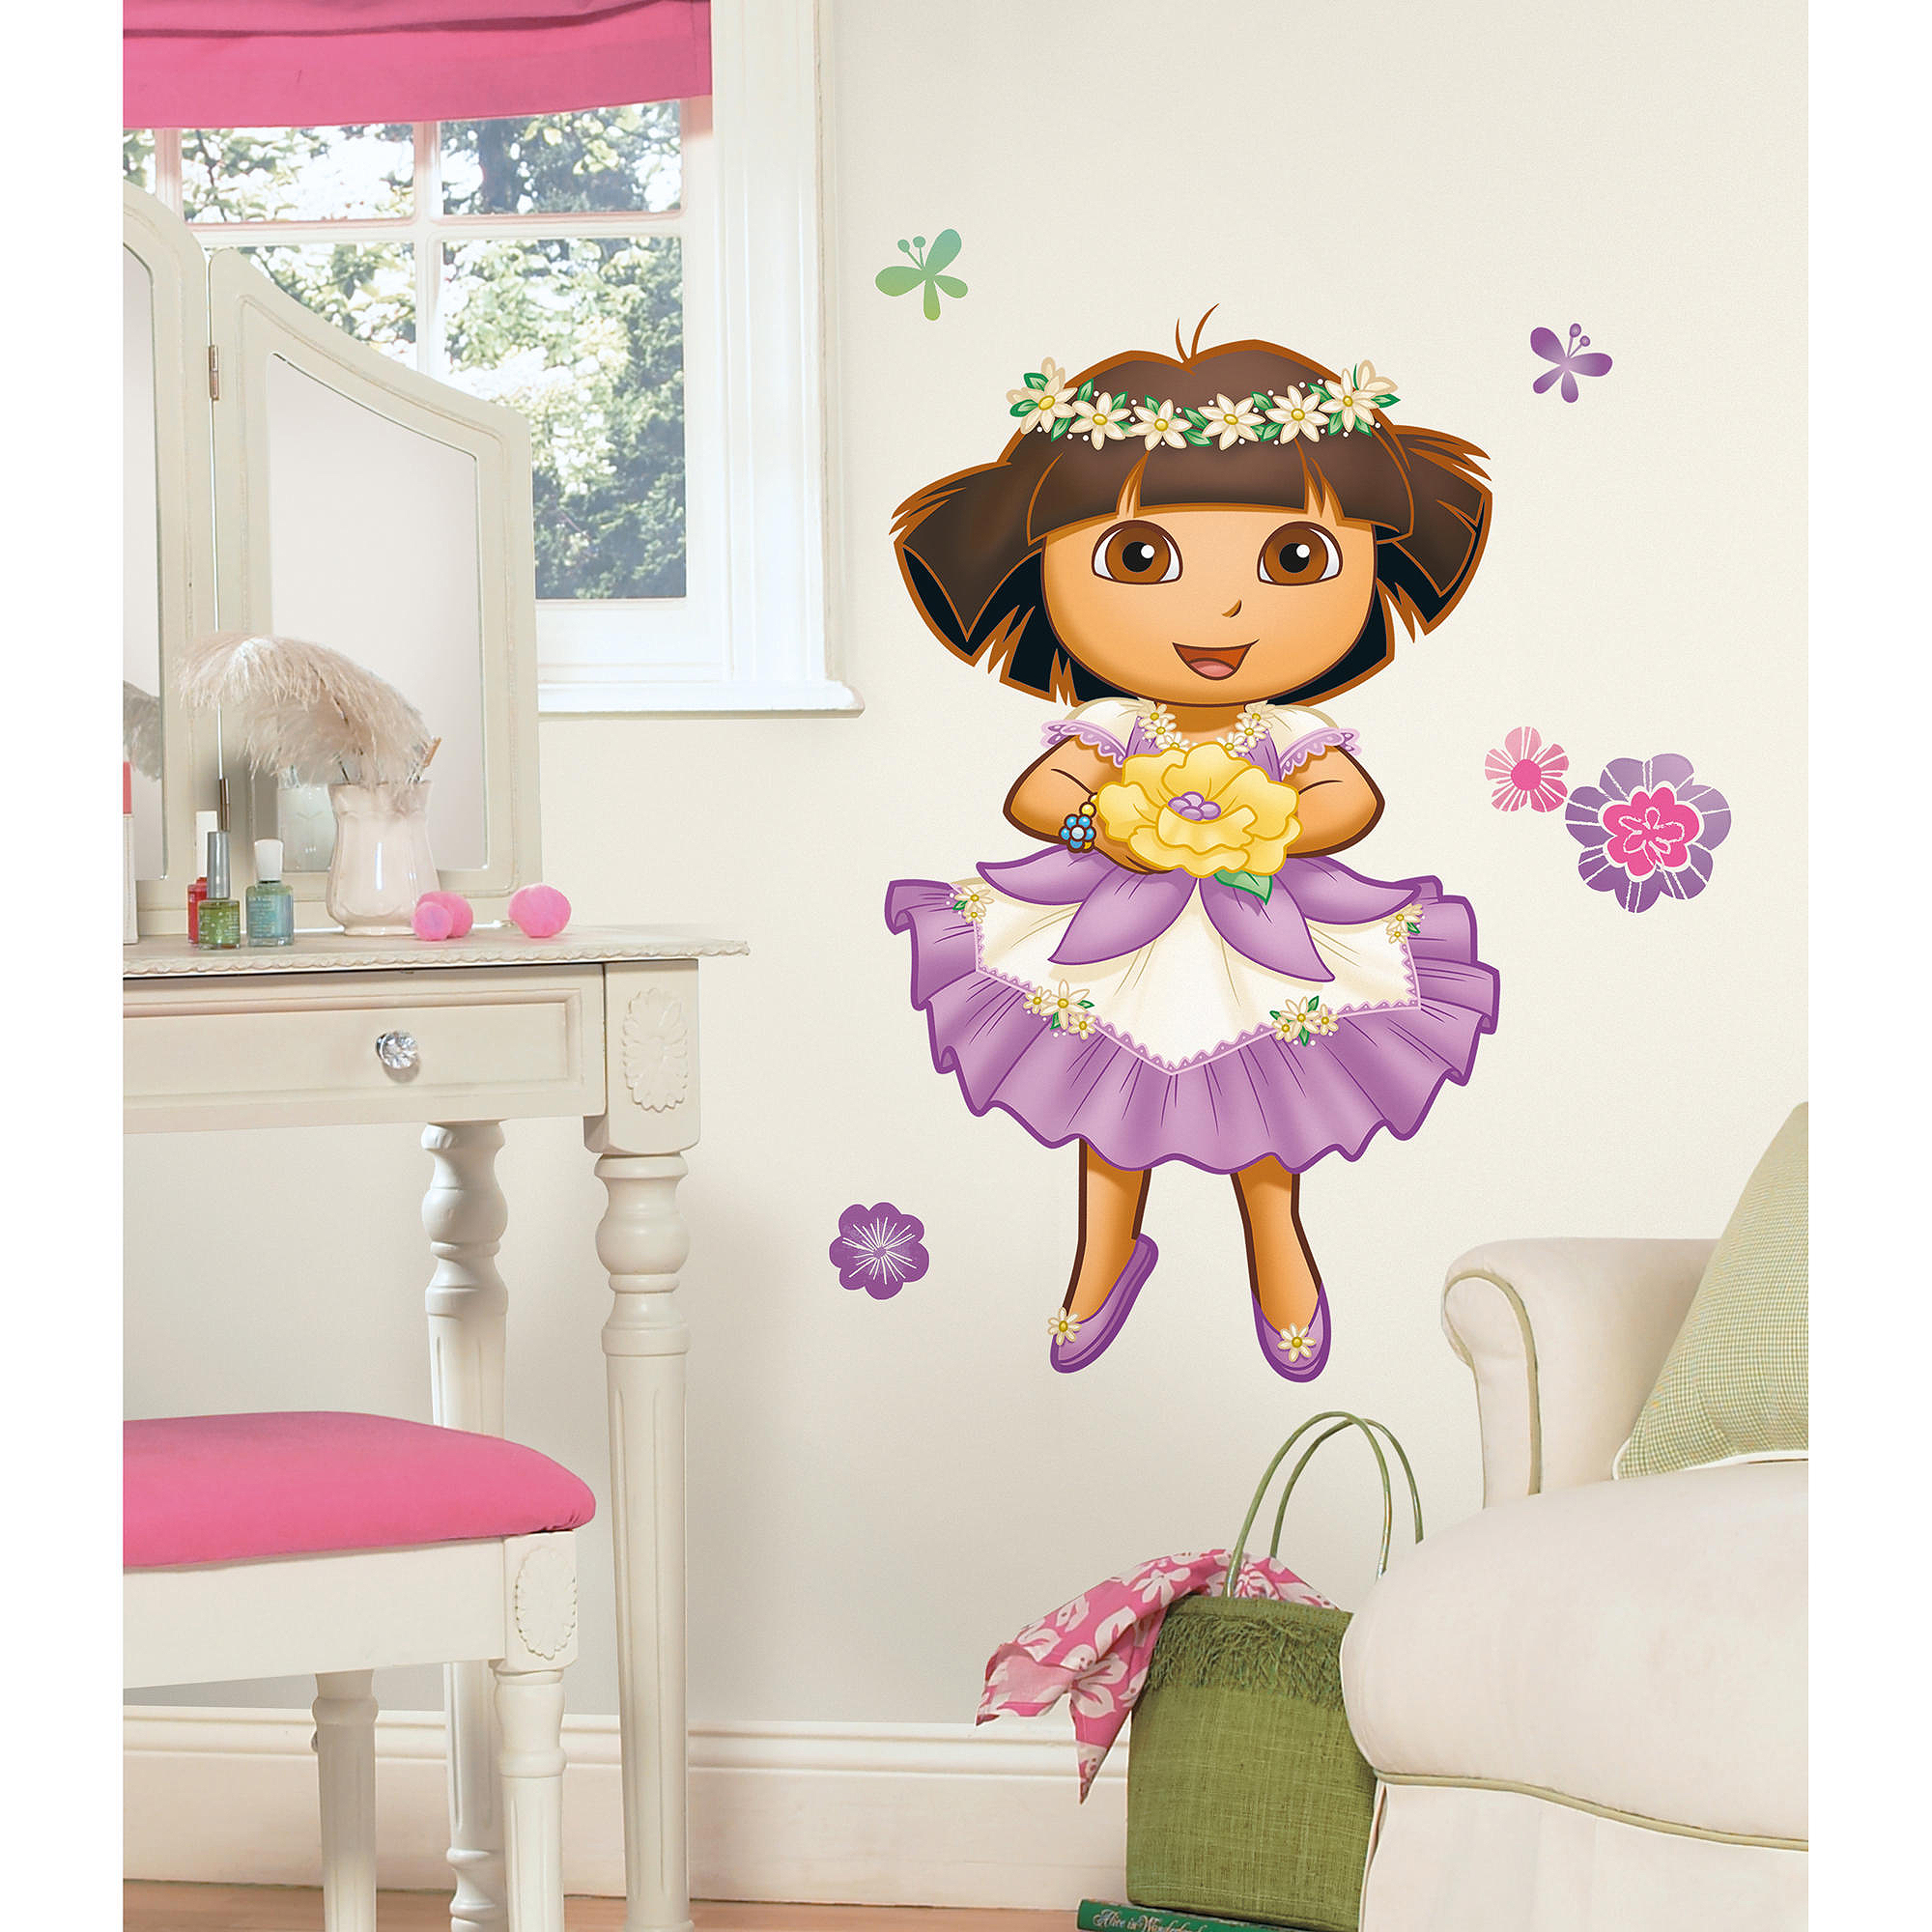 RoomMates Dora's Enchanted Forest Peel & Stick Giant Wall Decal